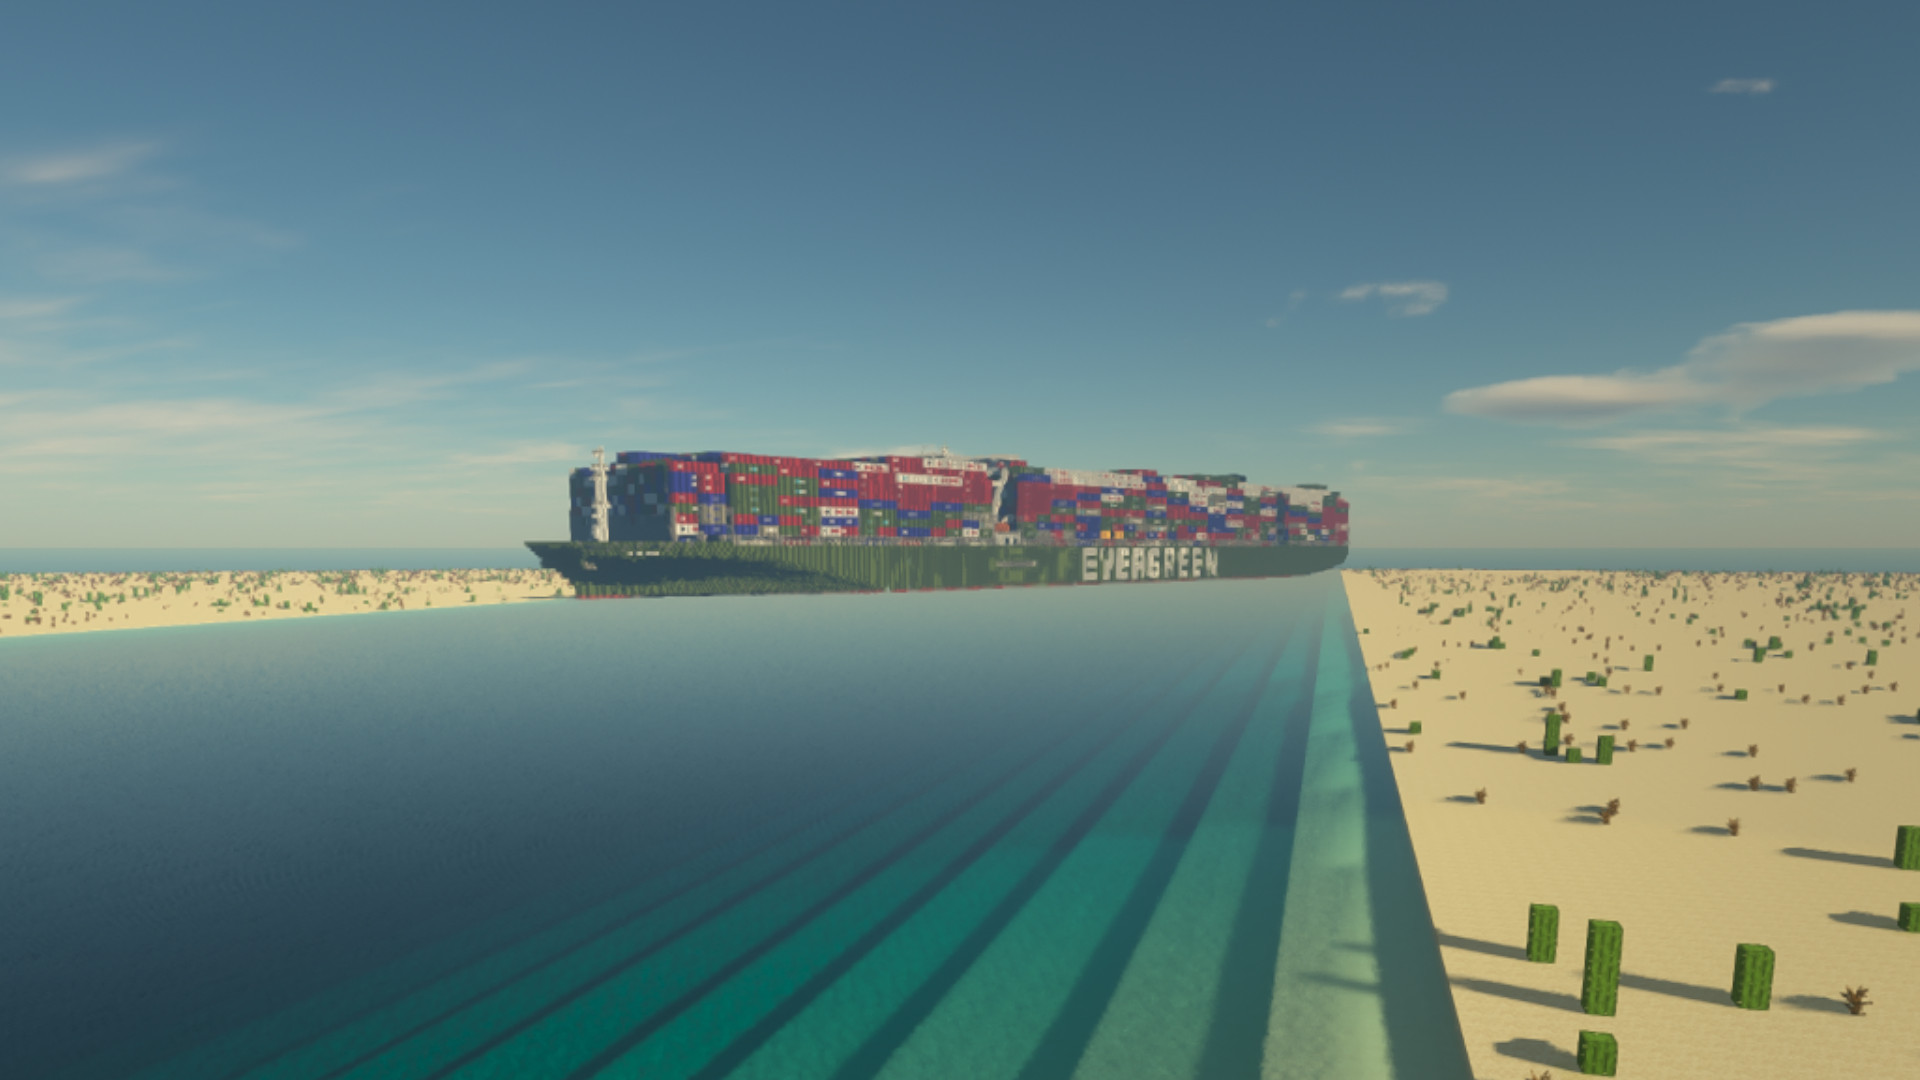 It took six days to get the Ever Given out of the Suez Canal, and 11 hours to build it in Minecraft